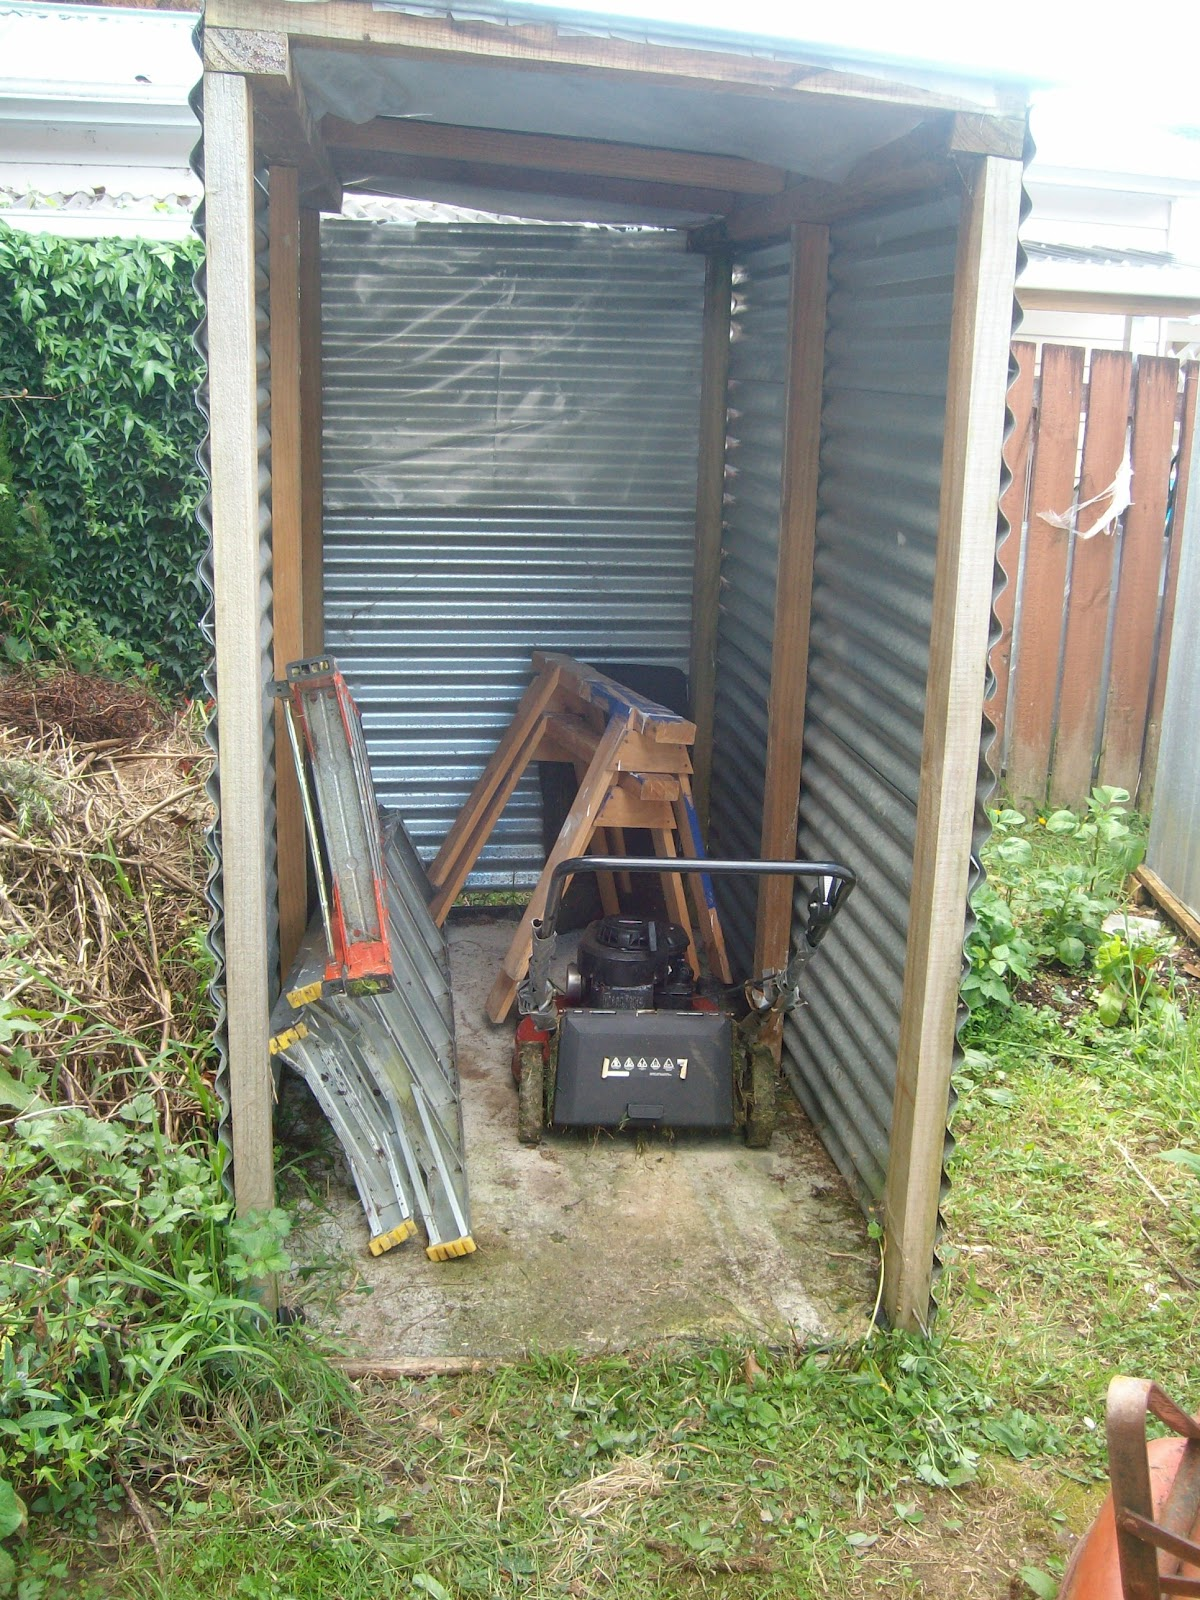 Tifany blog how to build a lawn tractor shed for Building a tractor barn